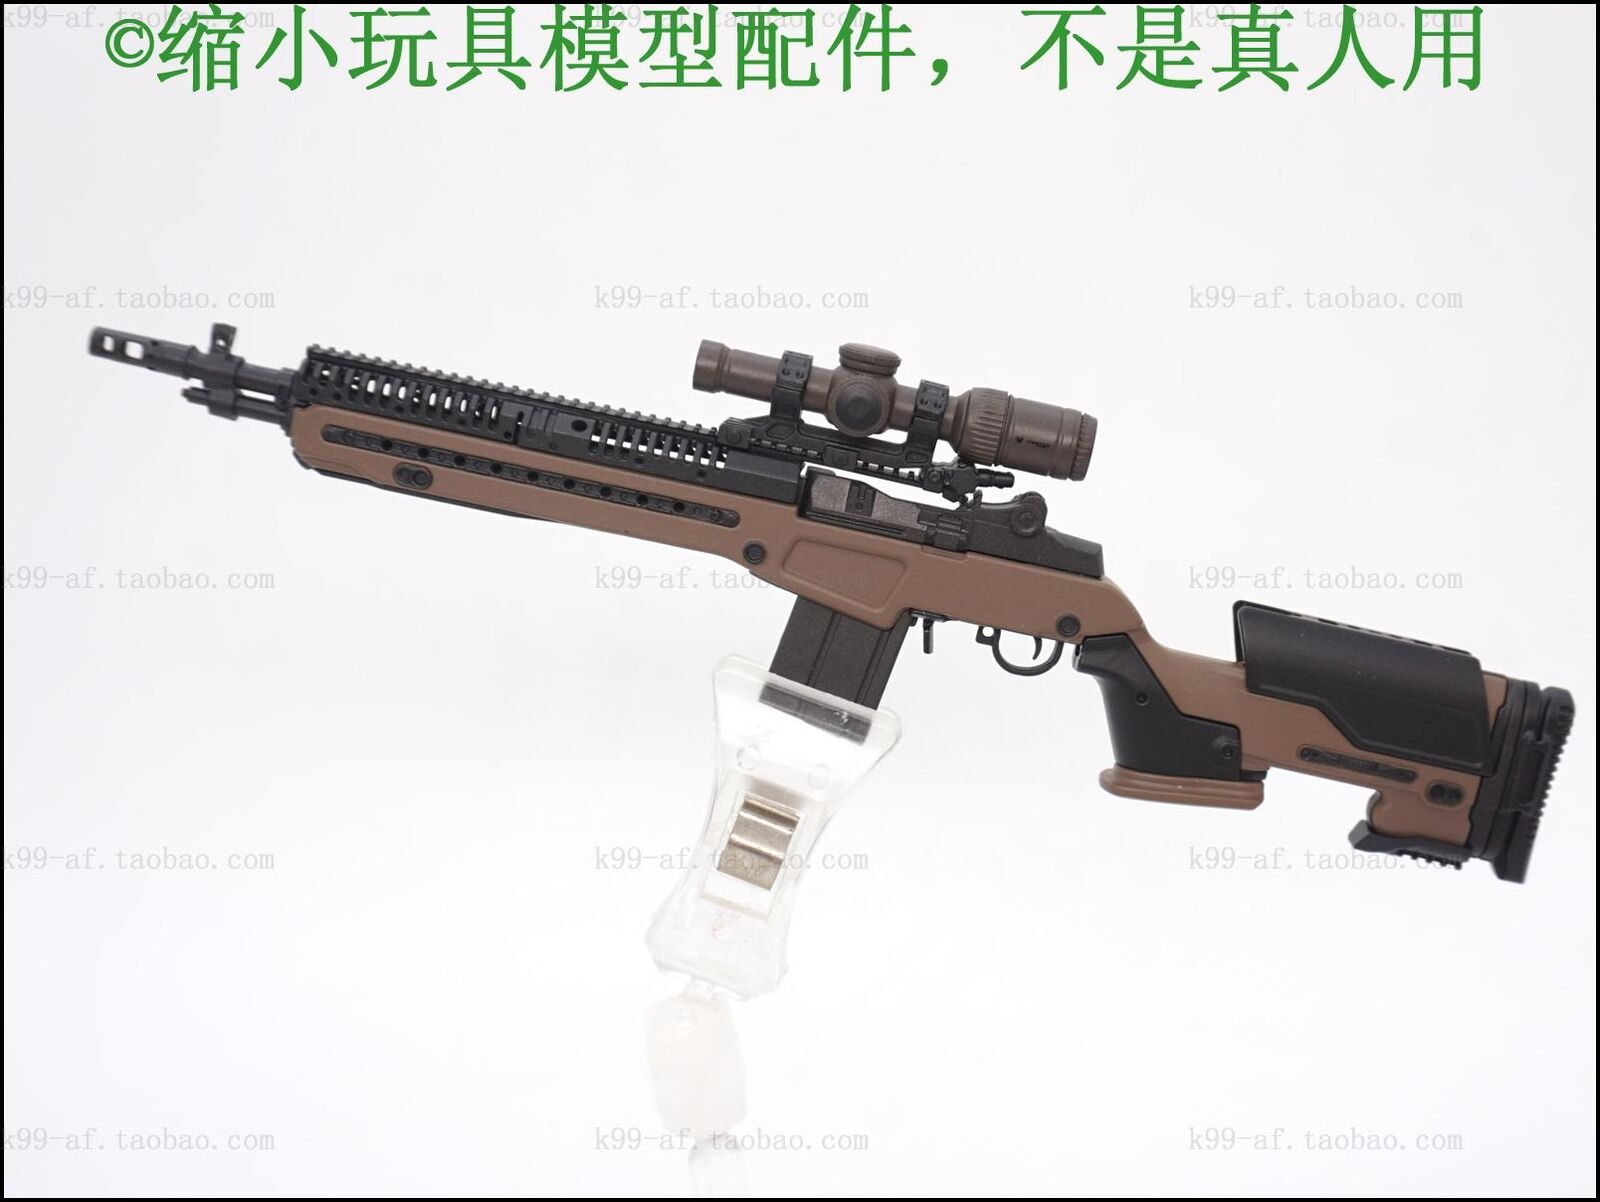 M14 Rifle & Accessories for Easy&Simple ES 26025 Urban Sniper 1/6 Scale 12''